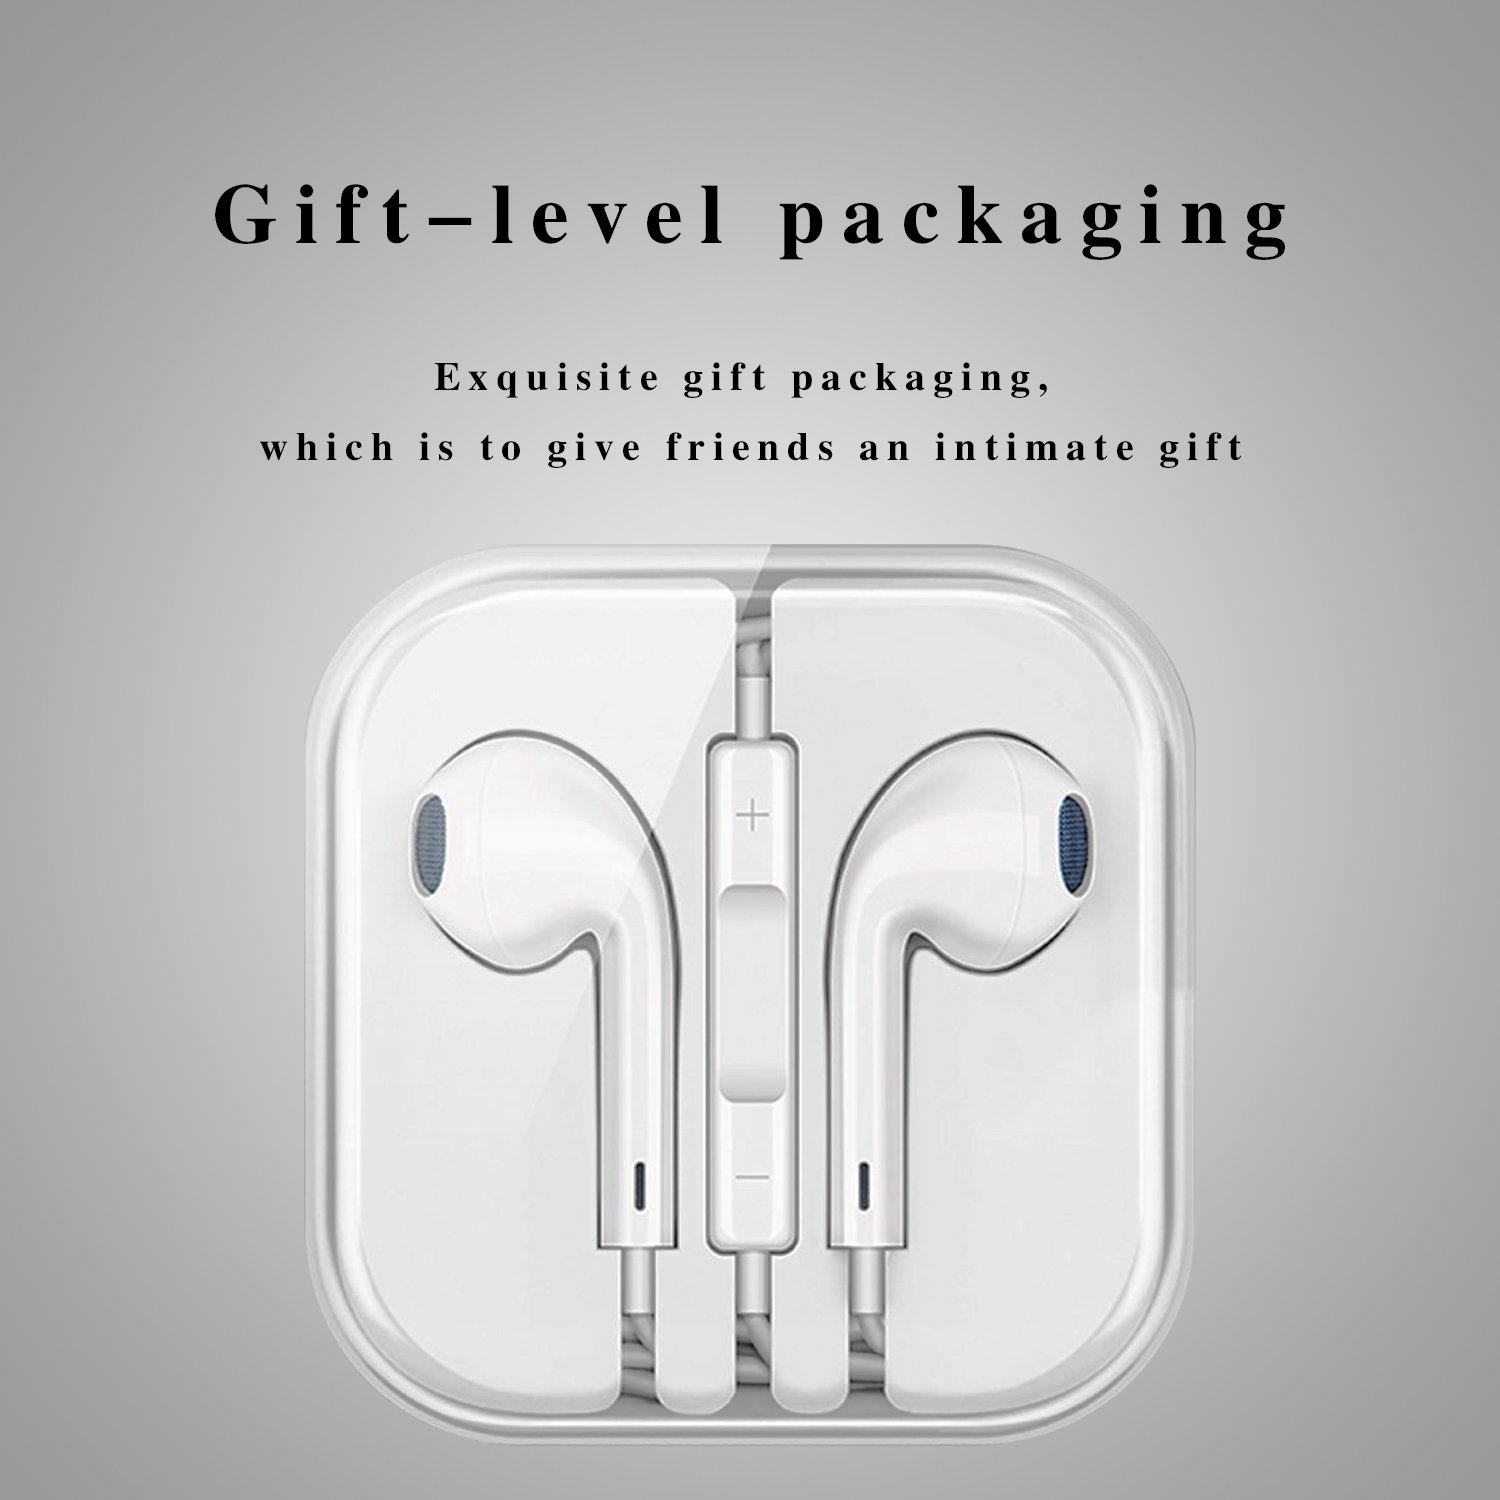 Cafetec - [2 Pack][White][Premium Earbuds][Stereo Headphones][Noise Isolating][Headset Made] - Earphones Microphone - (Model iPhone iPod iPad) by Cafetec (Image #6)